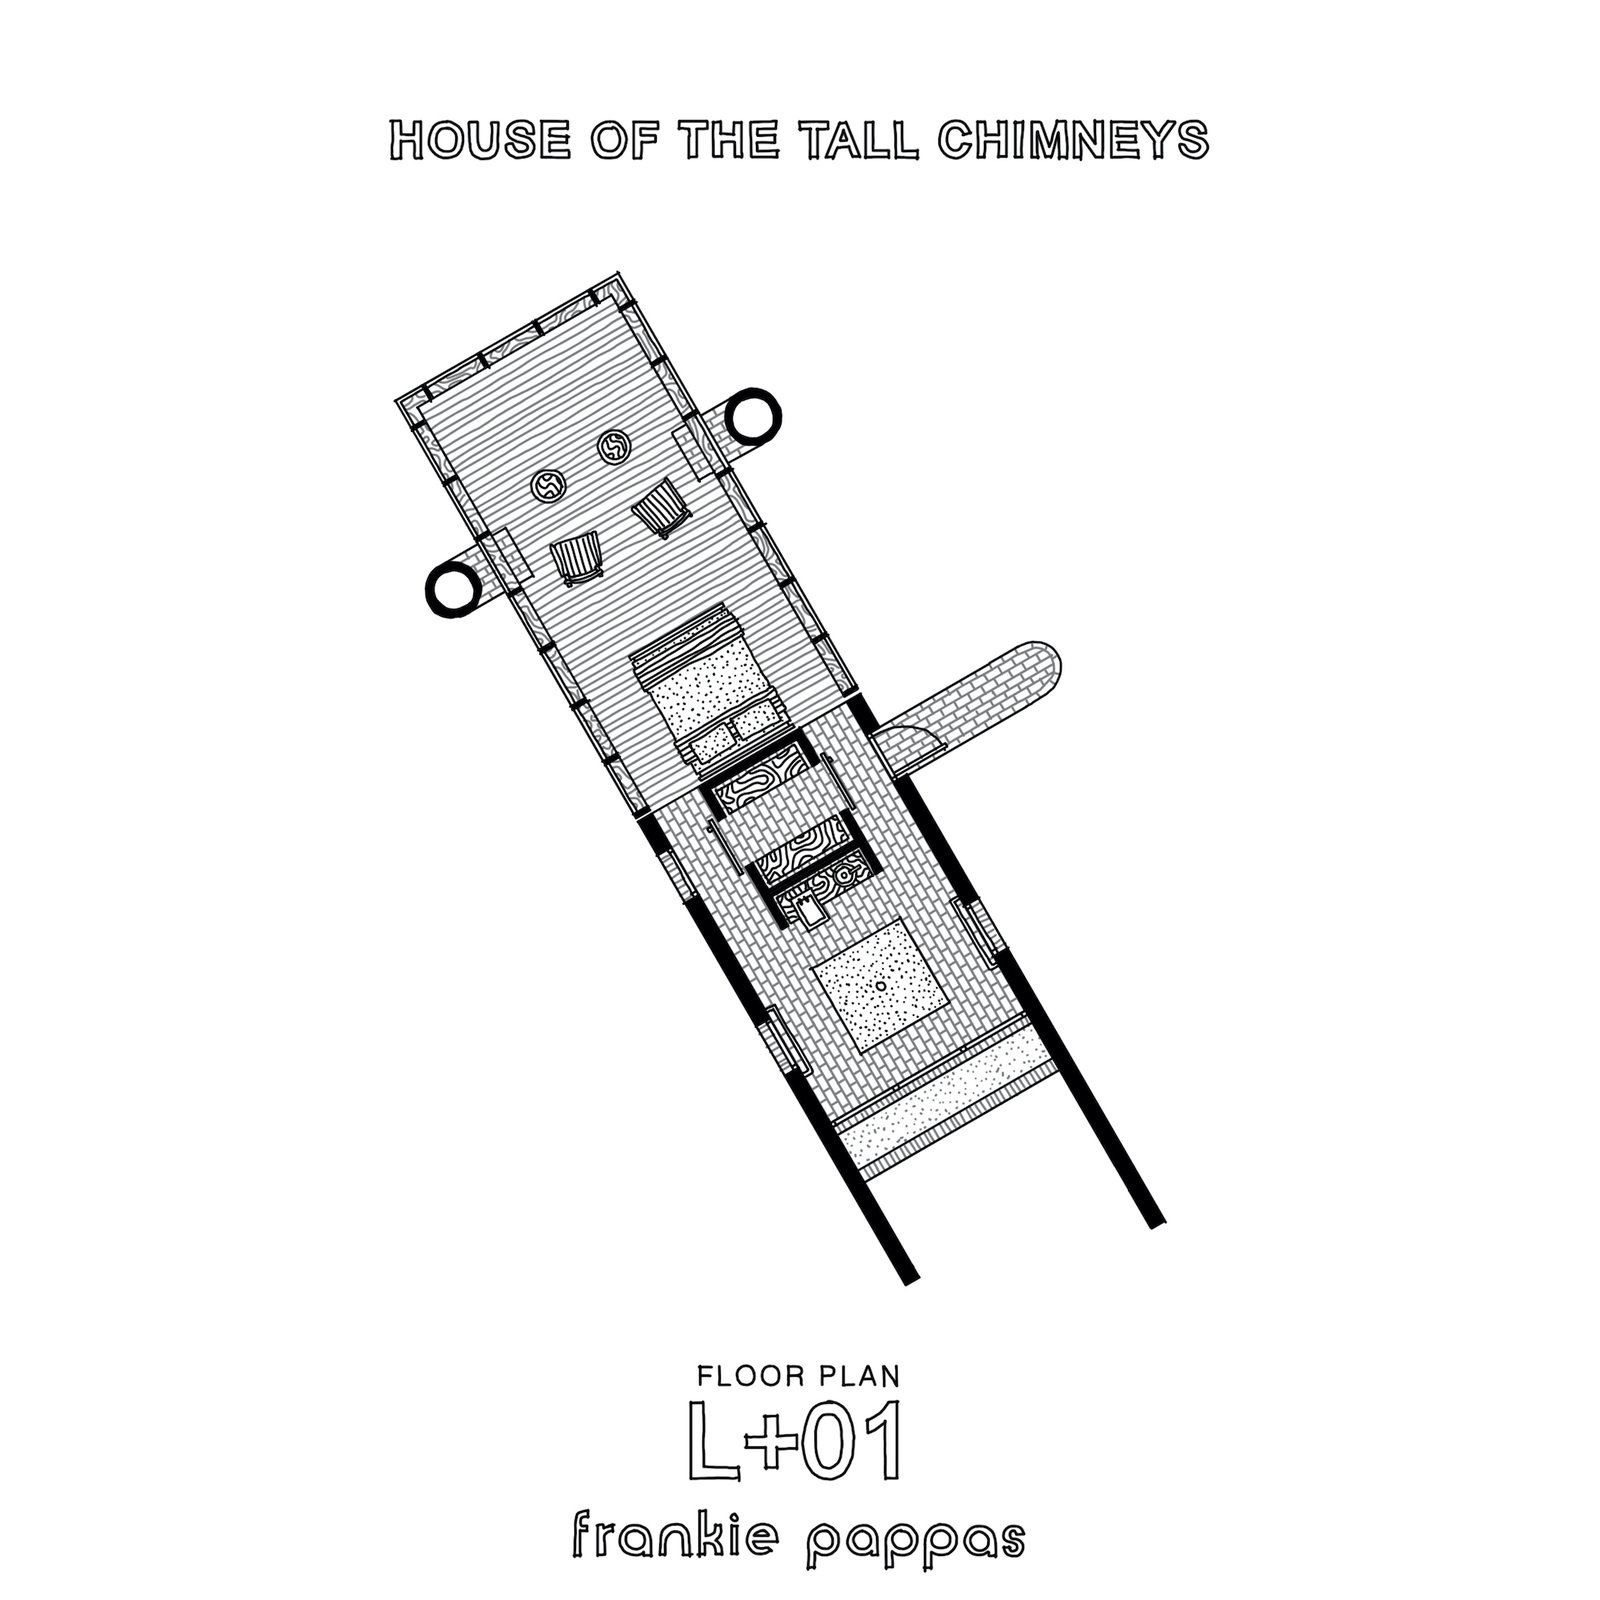 Upper-level floor plan of House of the Tall Chimneys by Frankie Pappas.